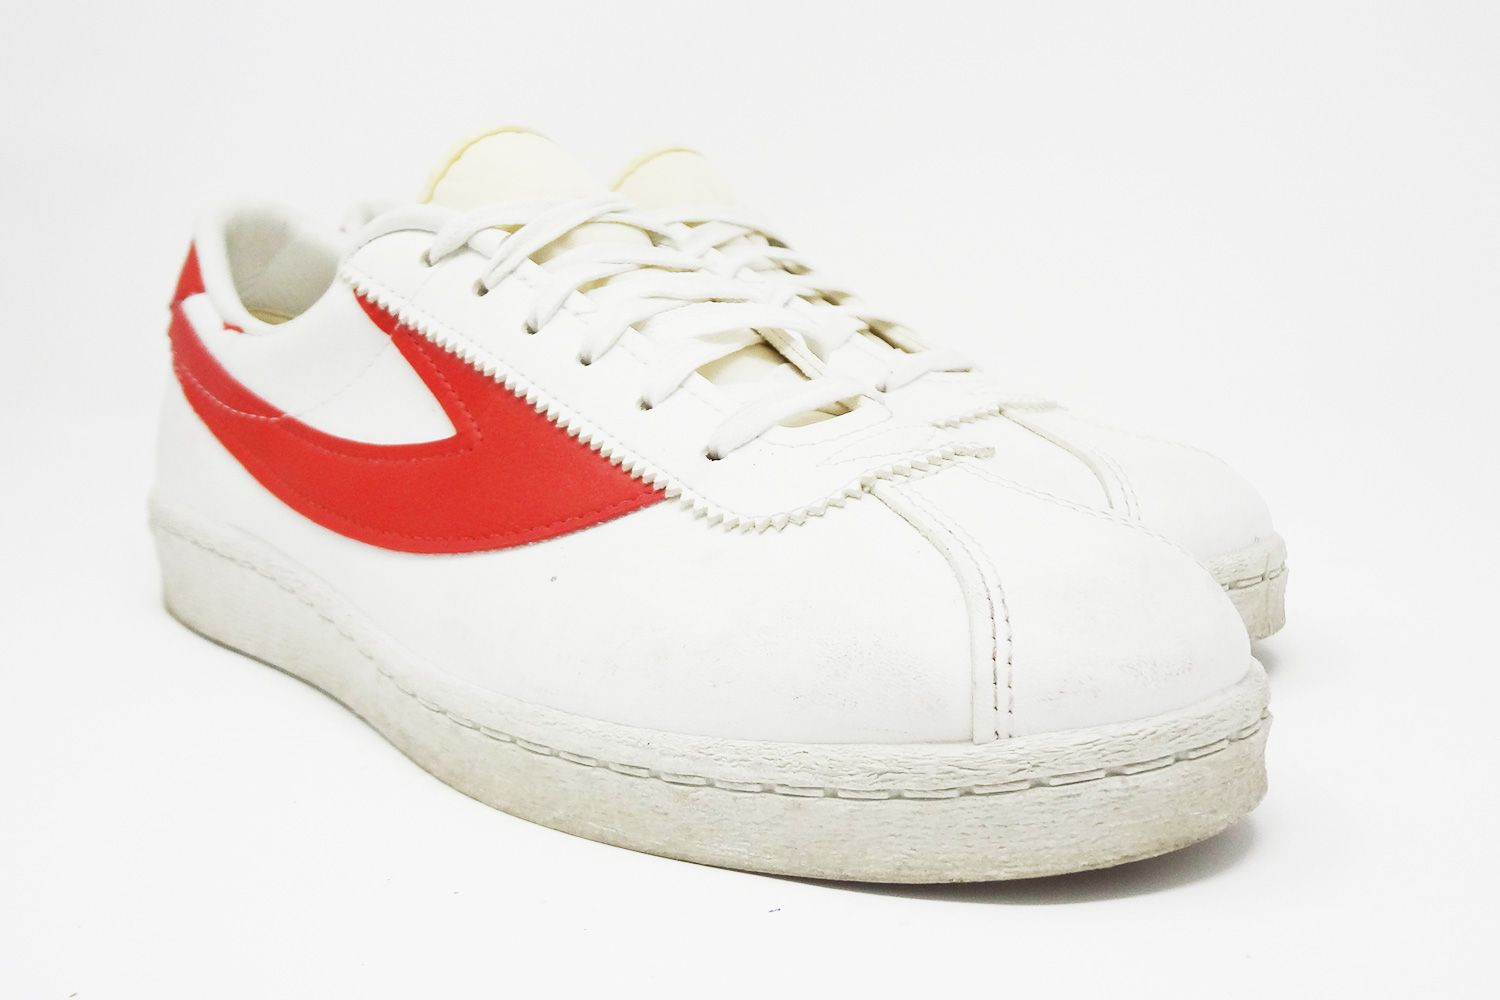 Vintage 80s Trax by Kmart Nike Bruin